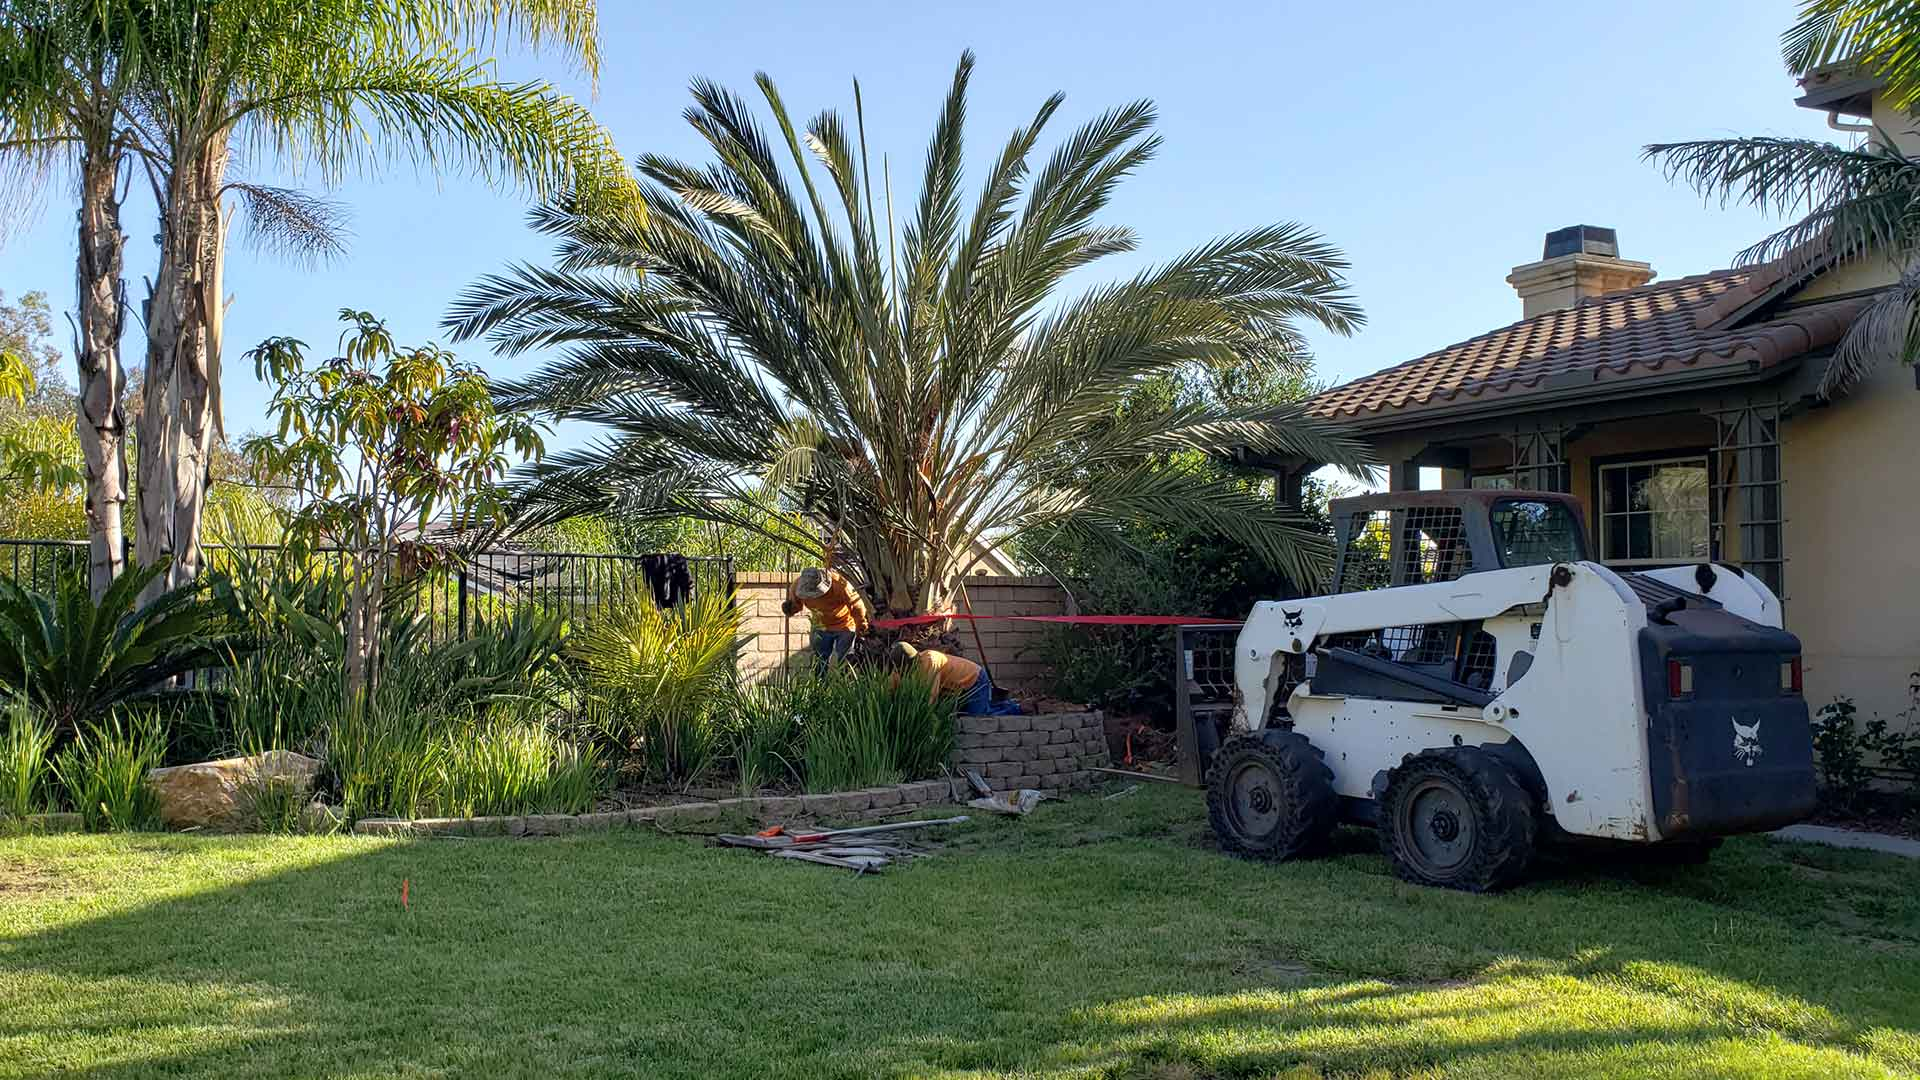 Installing new landscaping at a home in Solana Beach, CA.